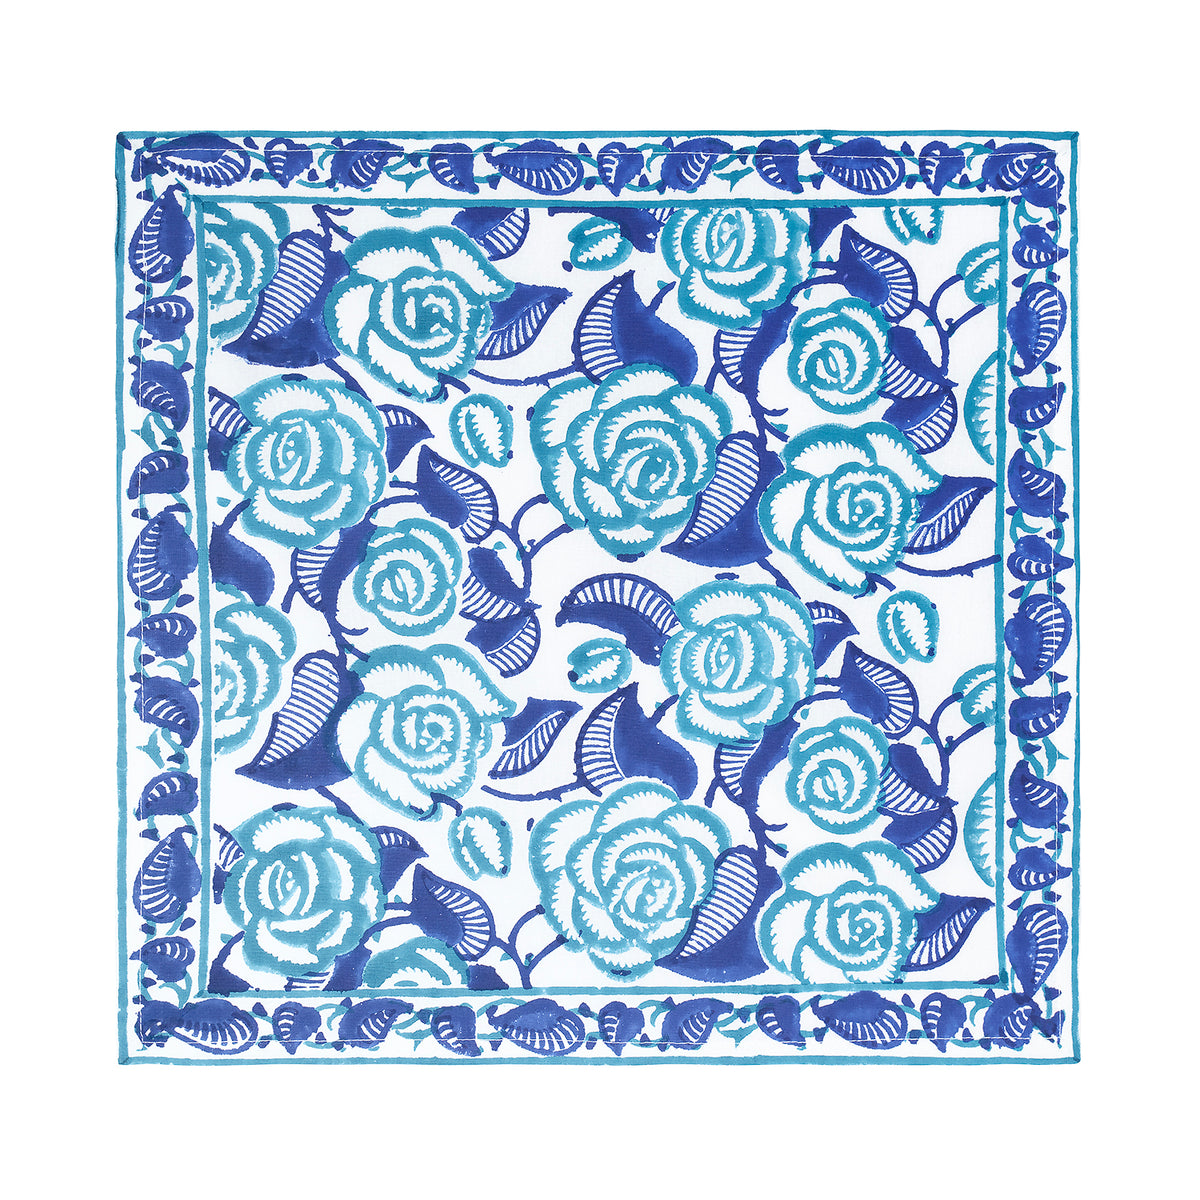 BLUE ROSE NAPKIN